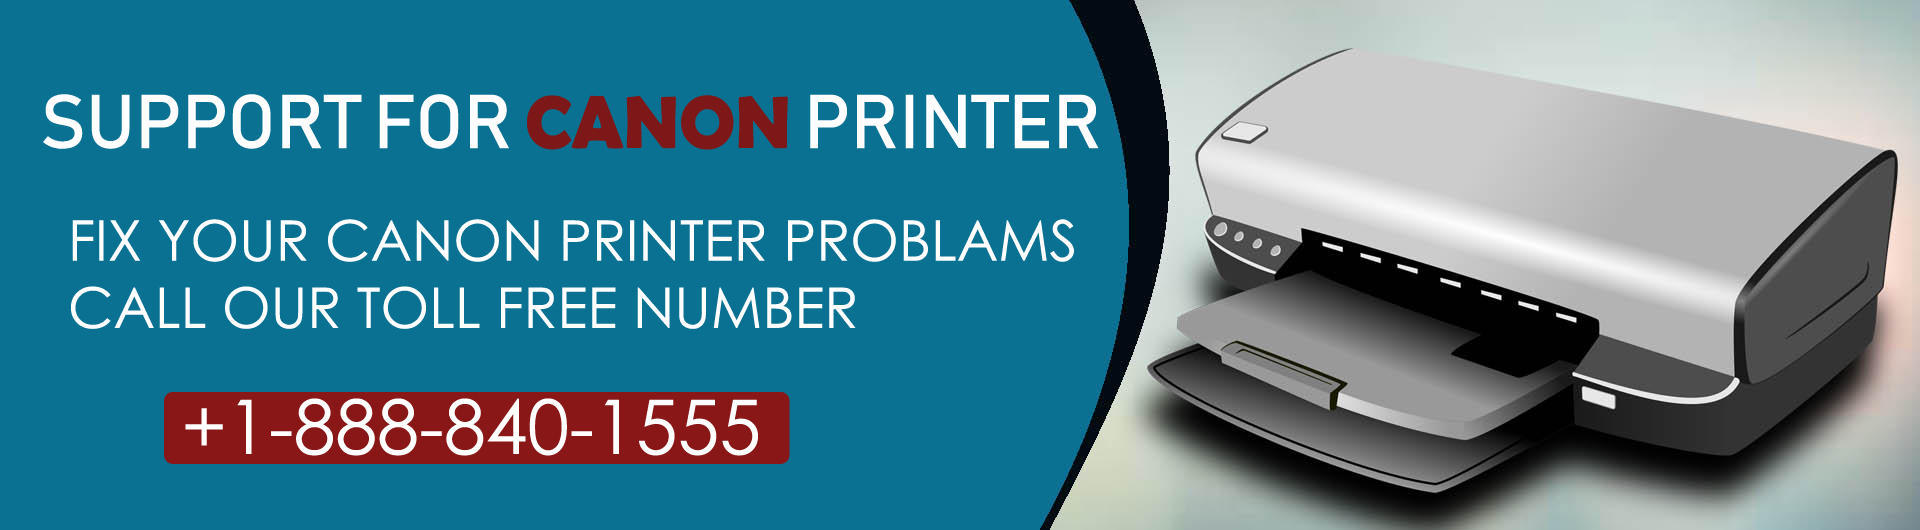 Canon Pixma Printer Support Number